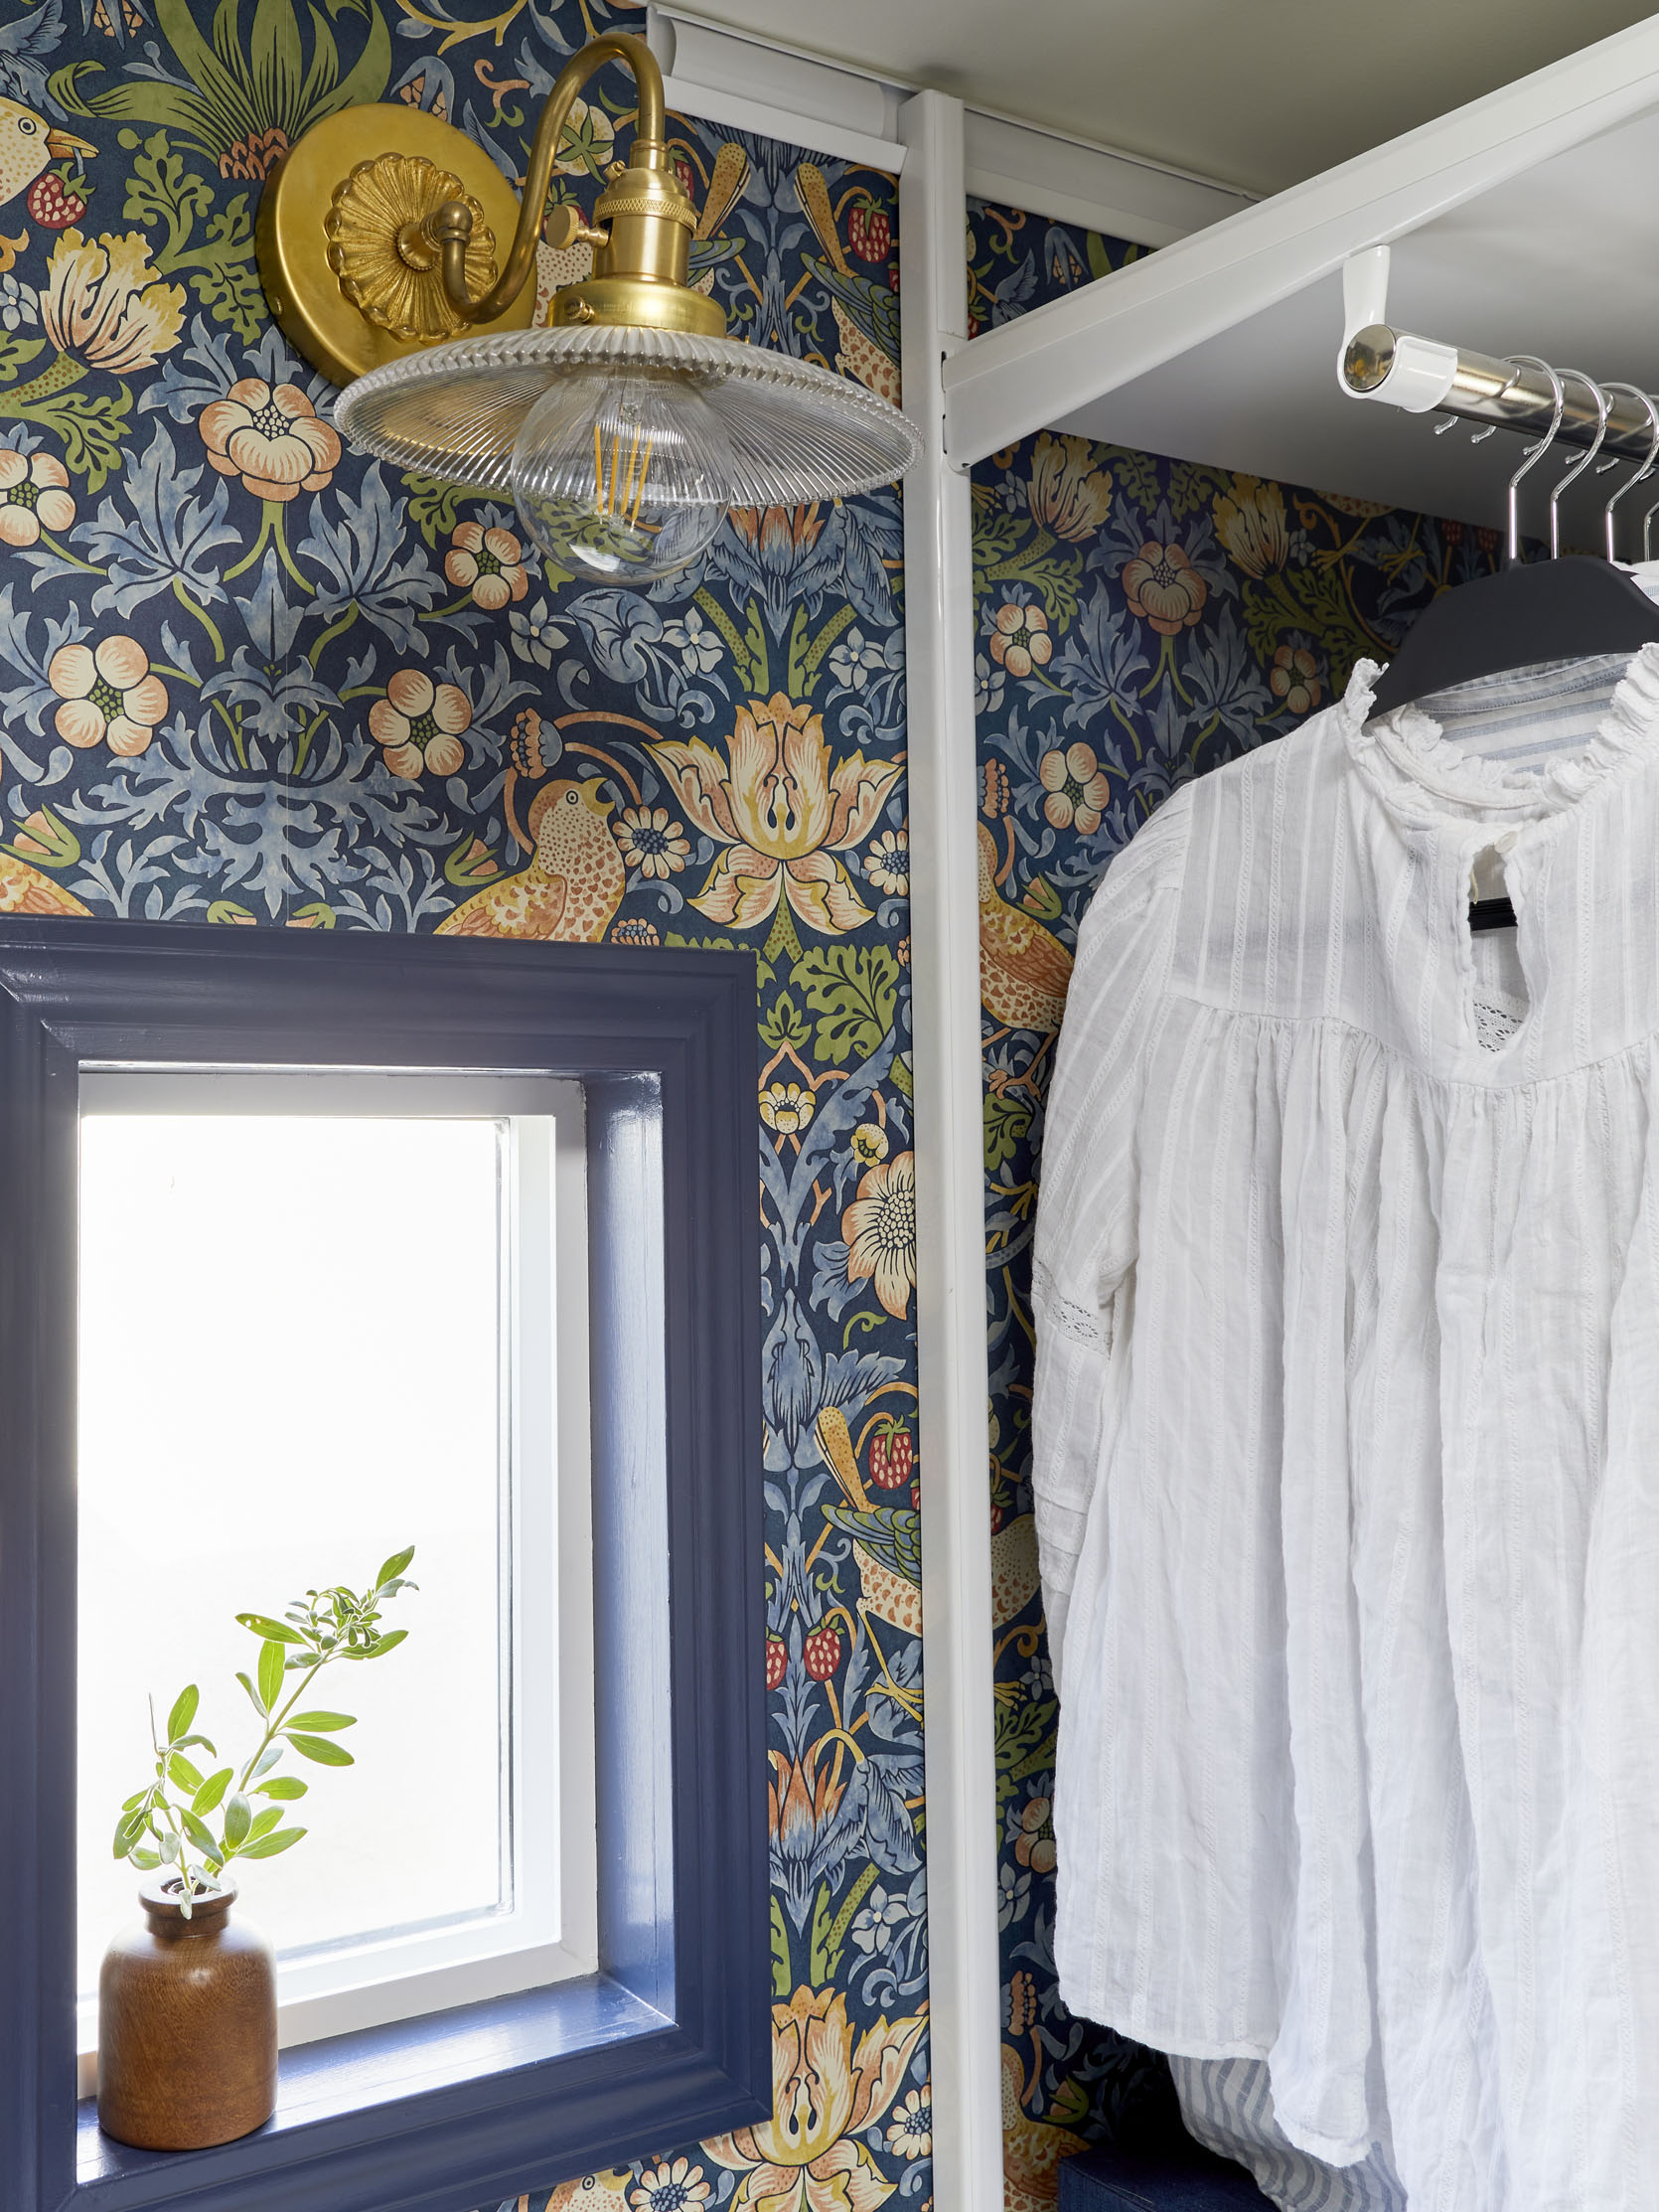 Sara's Primary Closet Reveal - The Bold Design Moment She's Been Craving Best Children's Lighting & Home Decor Online Store